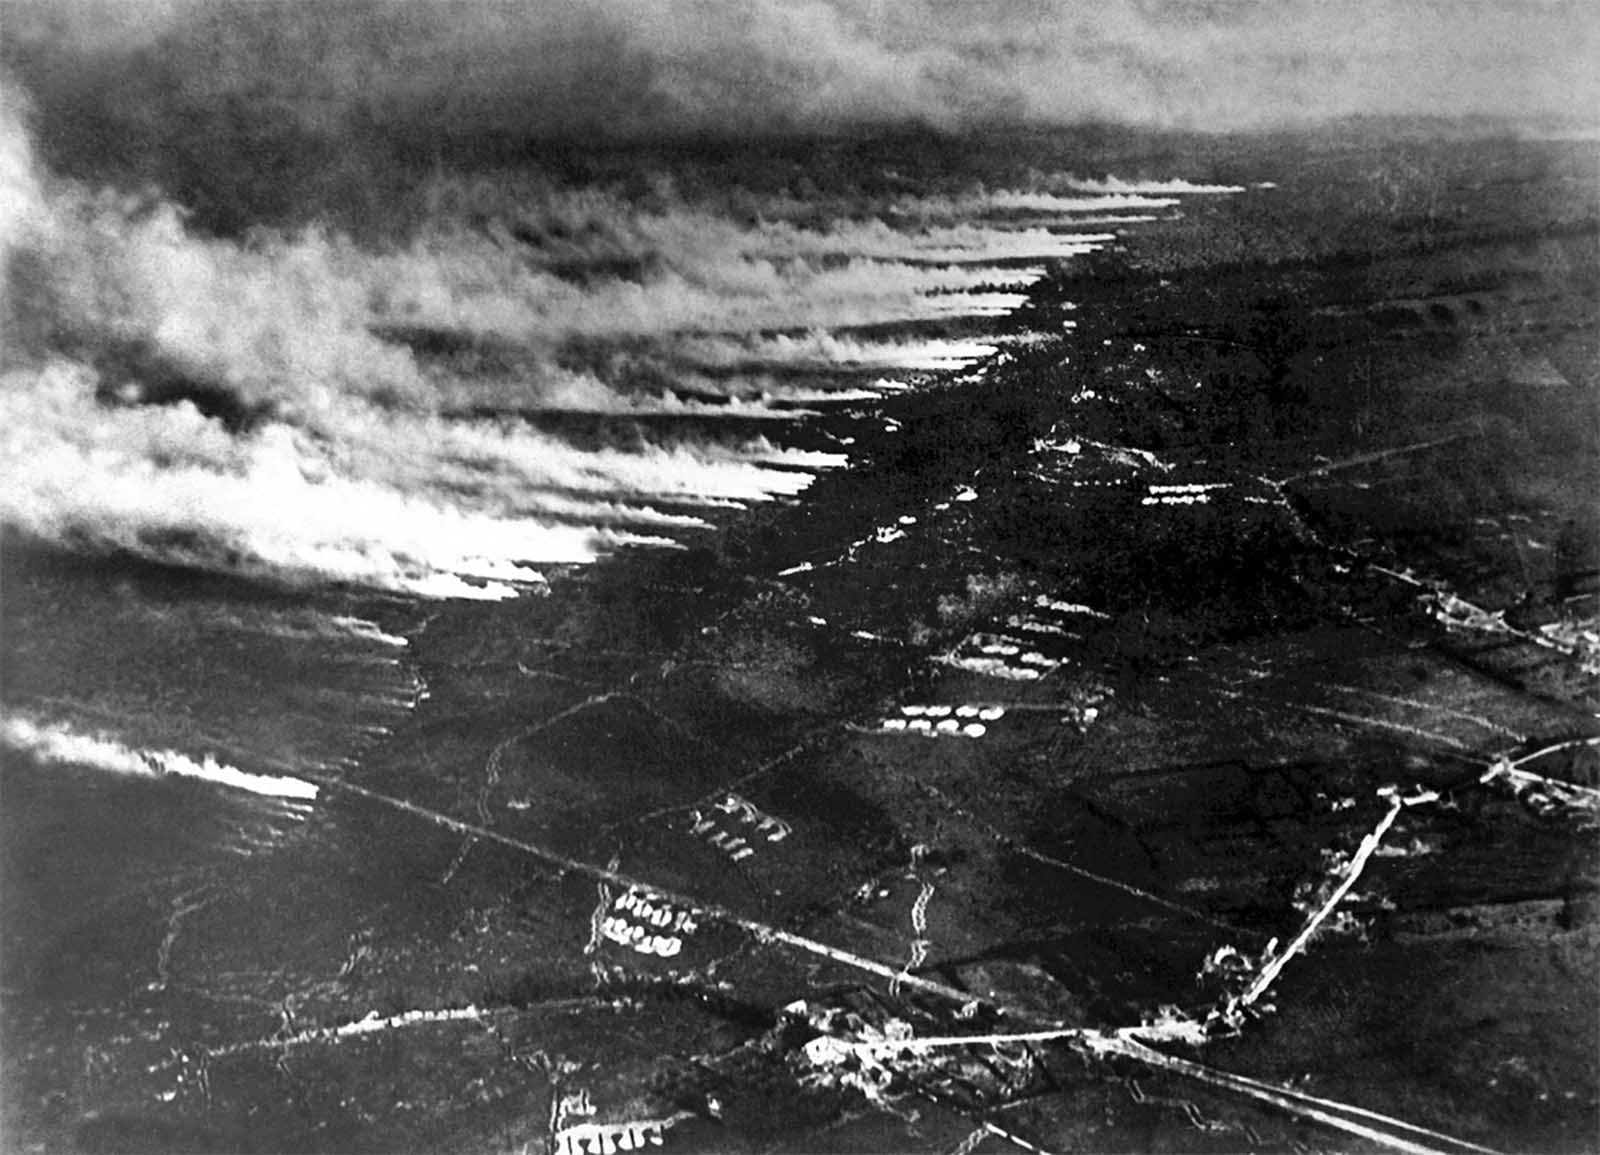 French soldiers make a gas and flame attack on German trenches in Flanders, Belgium, on January 1, 1917. Both sides used different gases as weapons during the war, both asphyxiants and irritants, often to devastating effect.